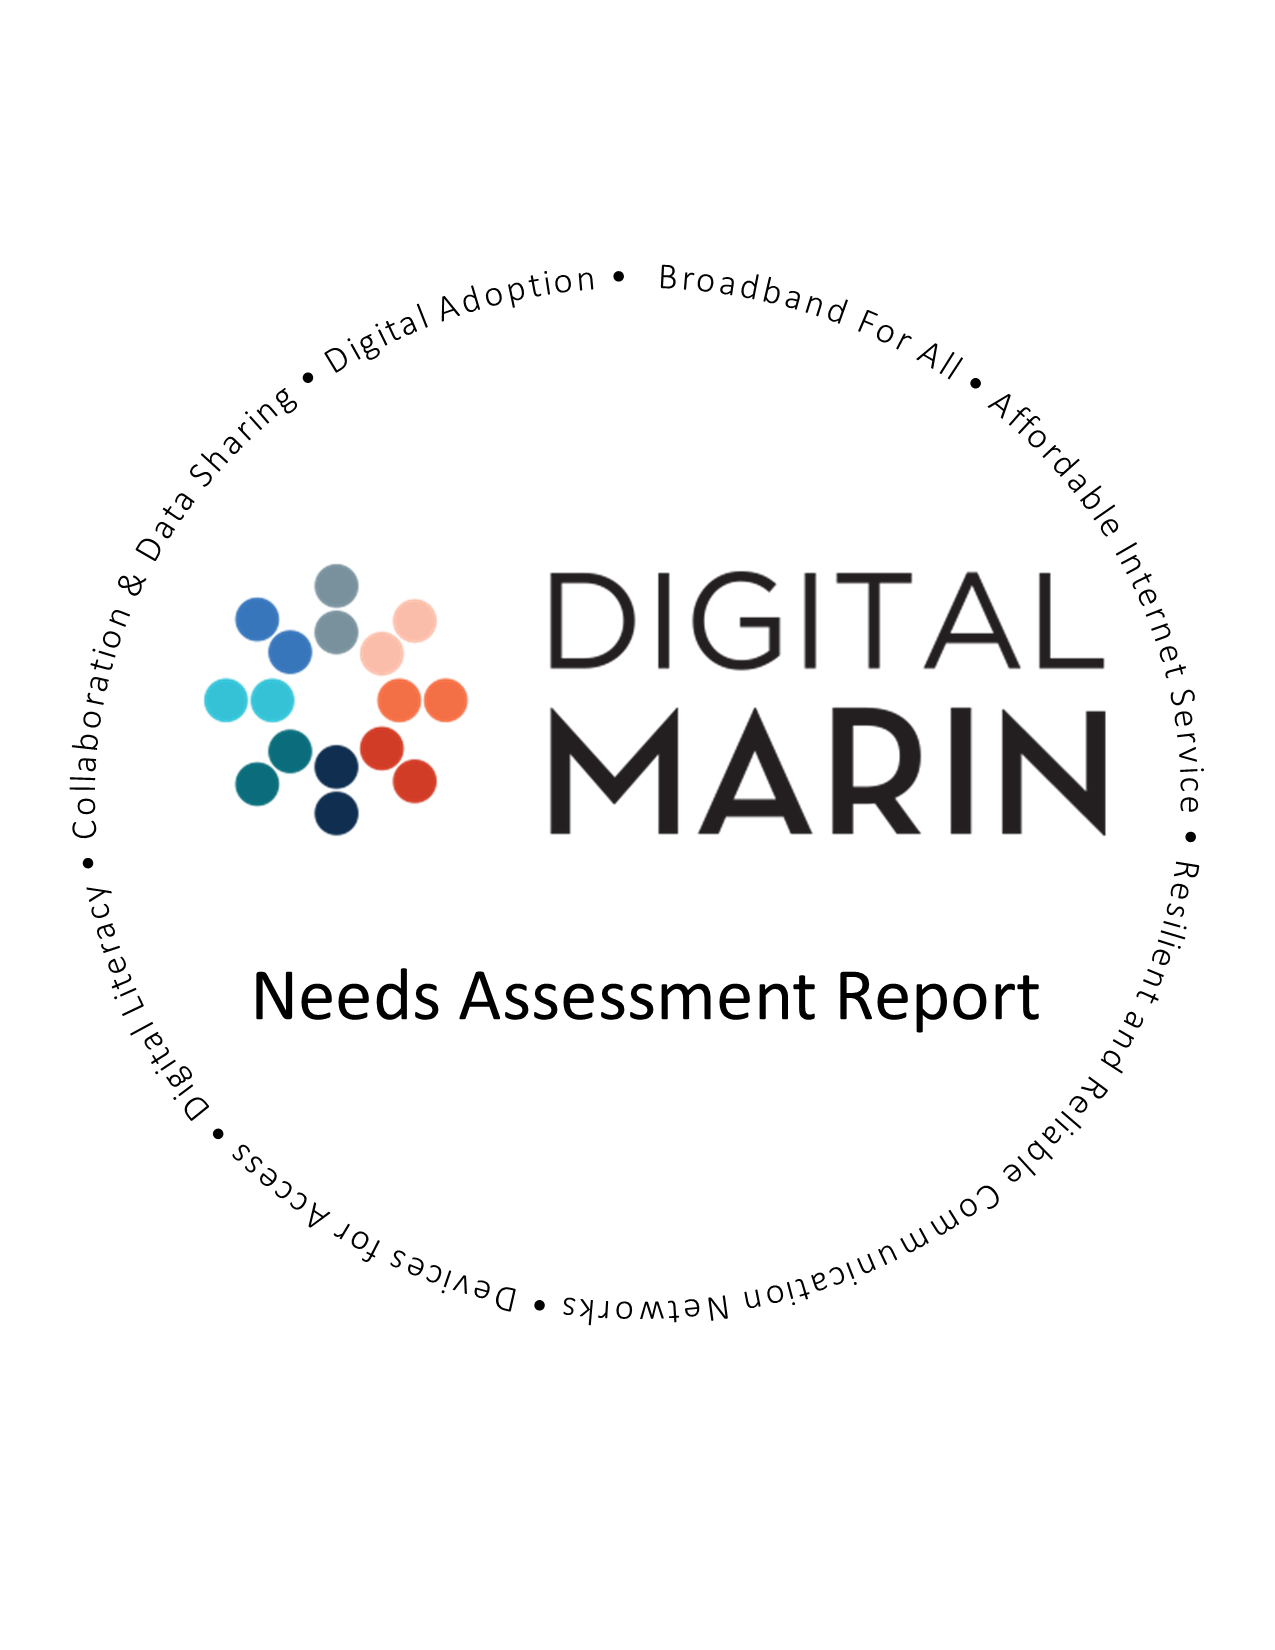 Digital Marin Logo with Needs Assessment words in a circle